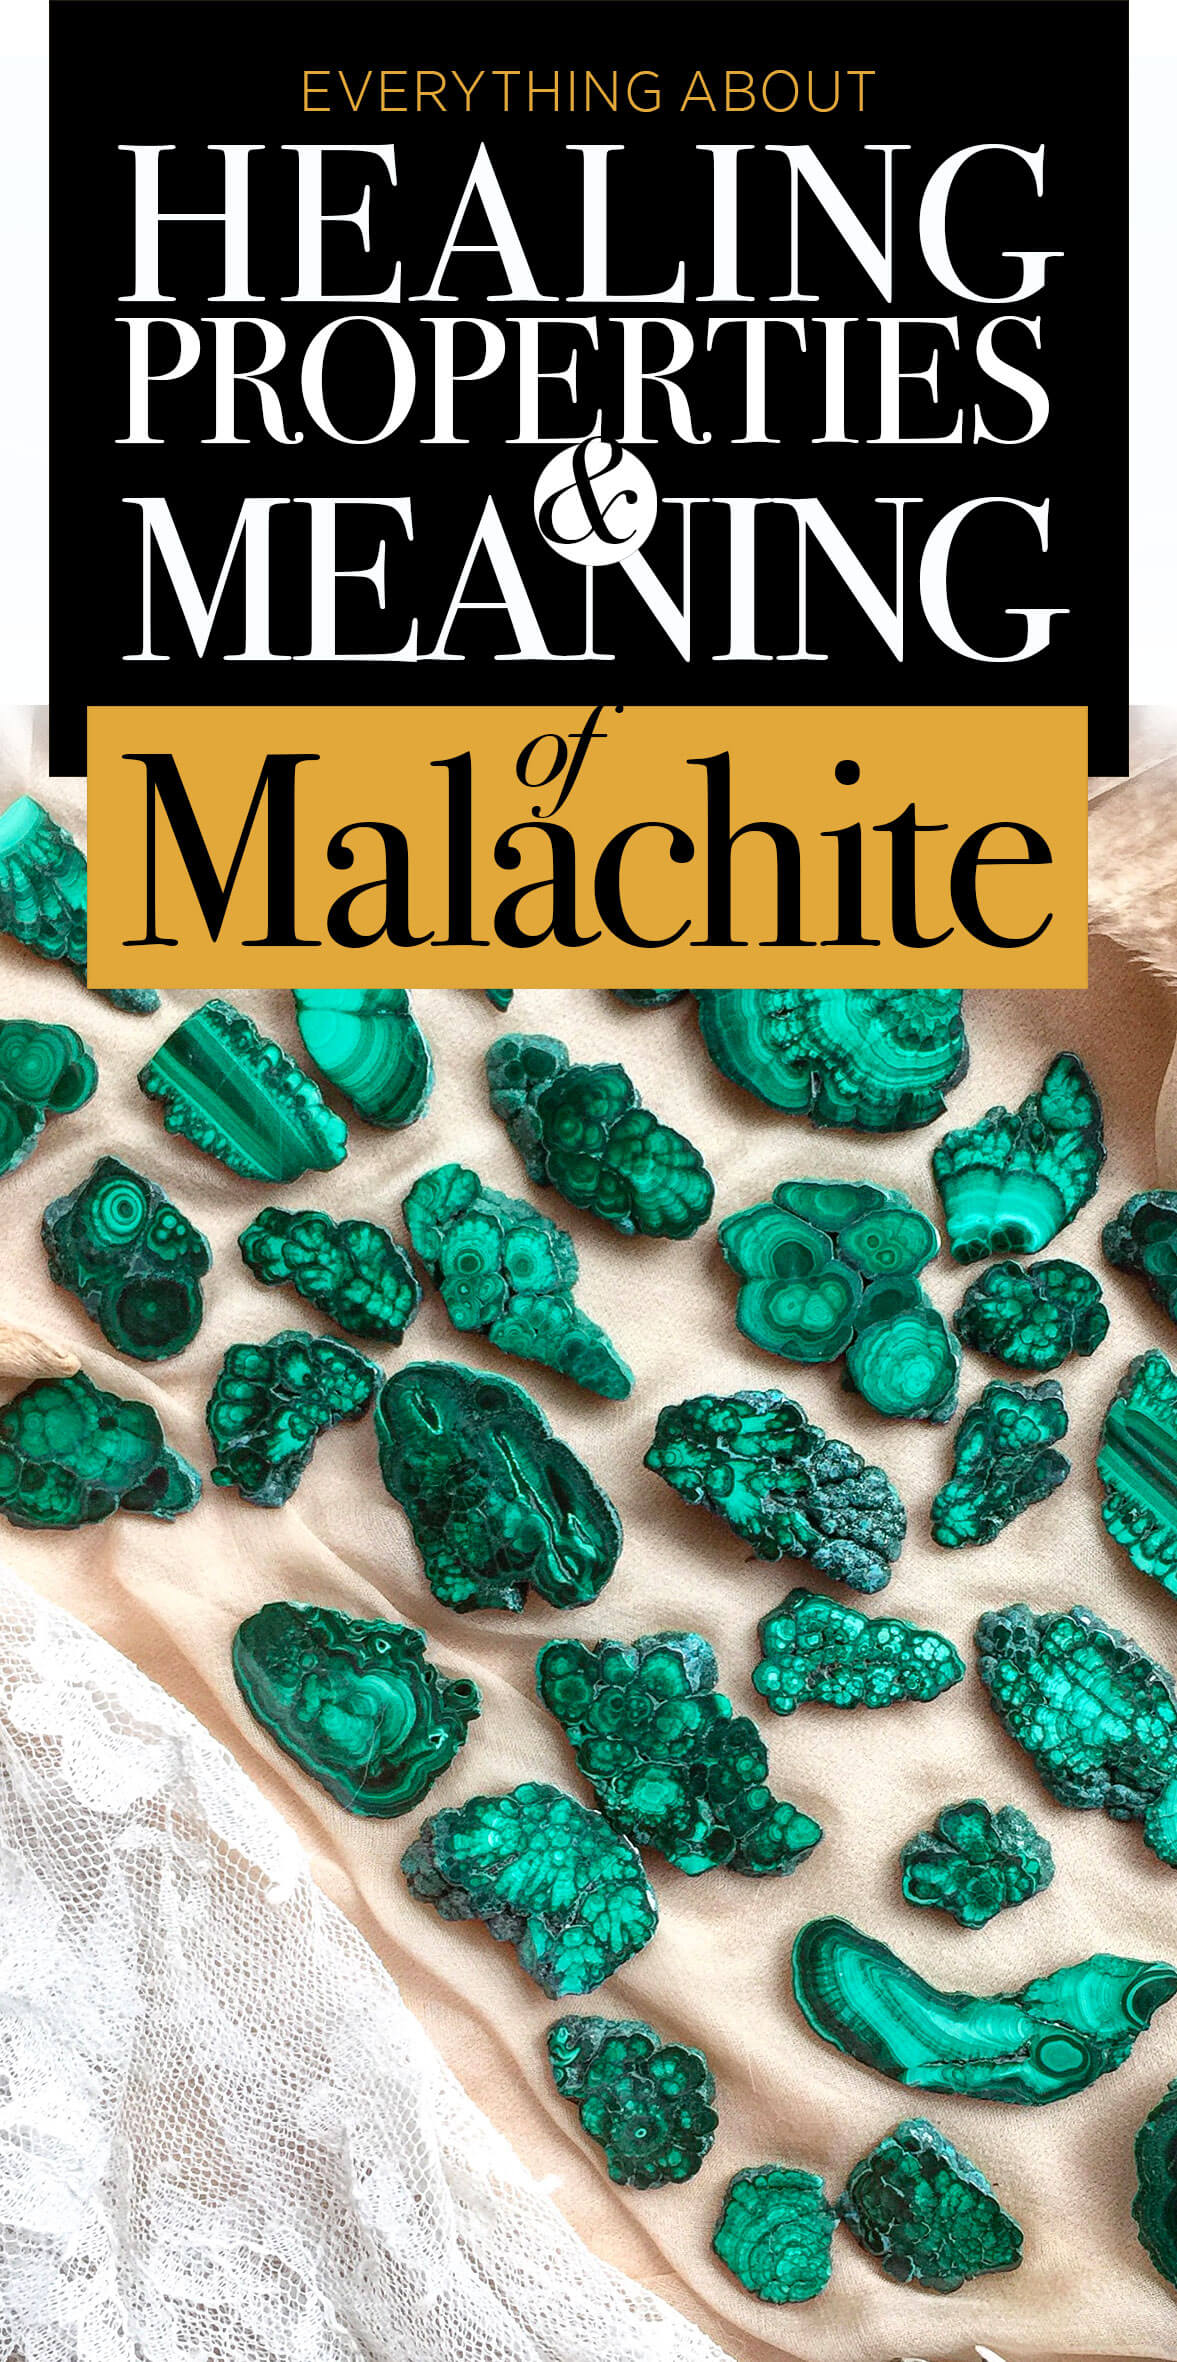 Malachite properties and meanings